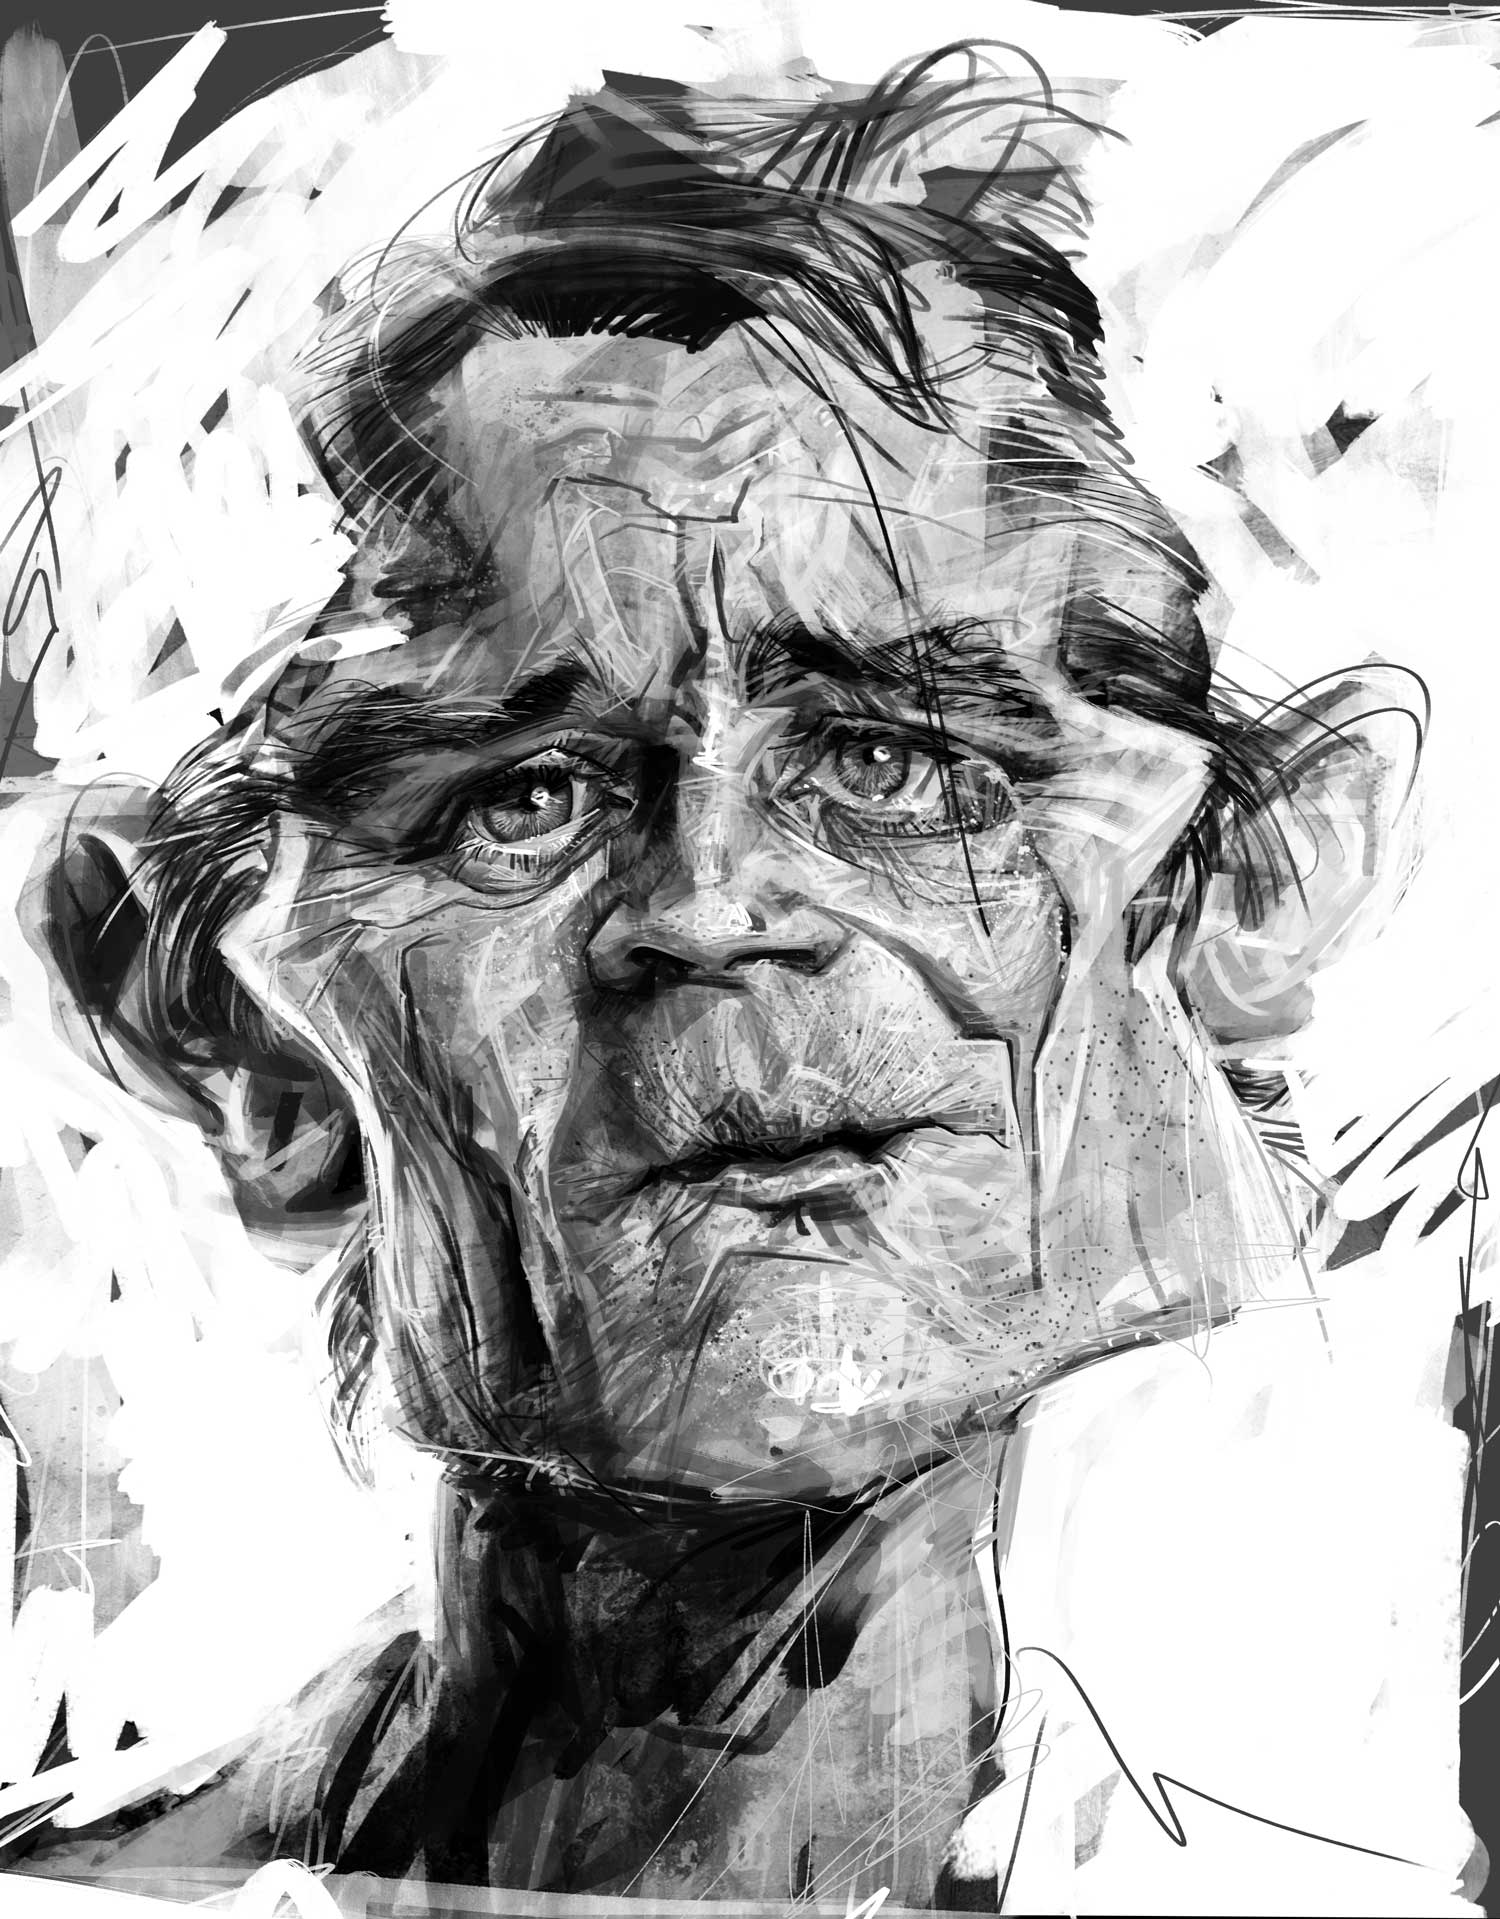 Black and white digital caricature portrait of a man